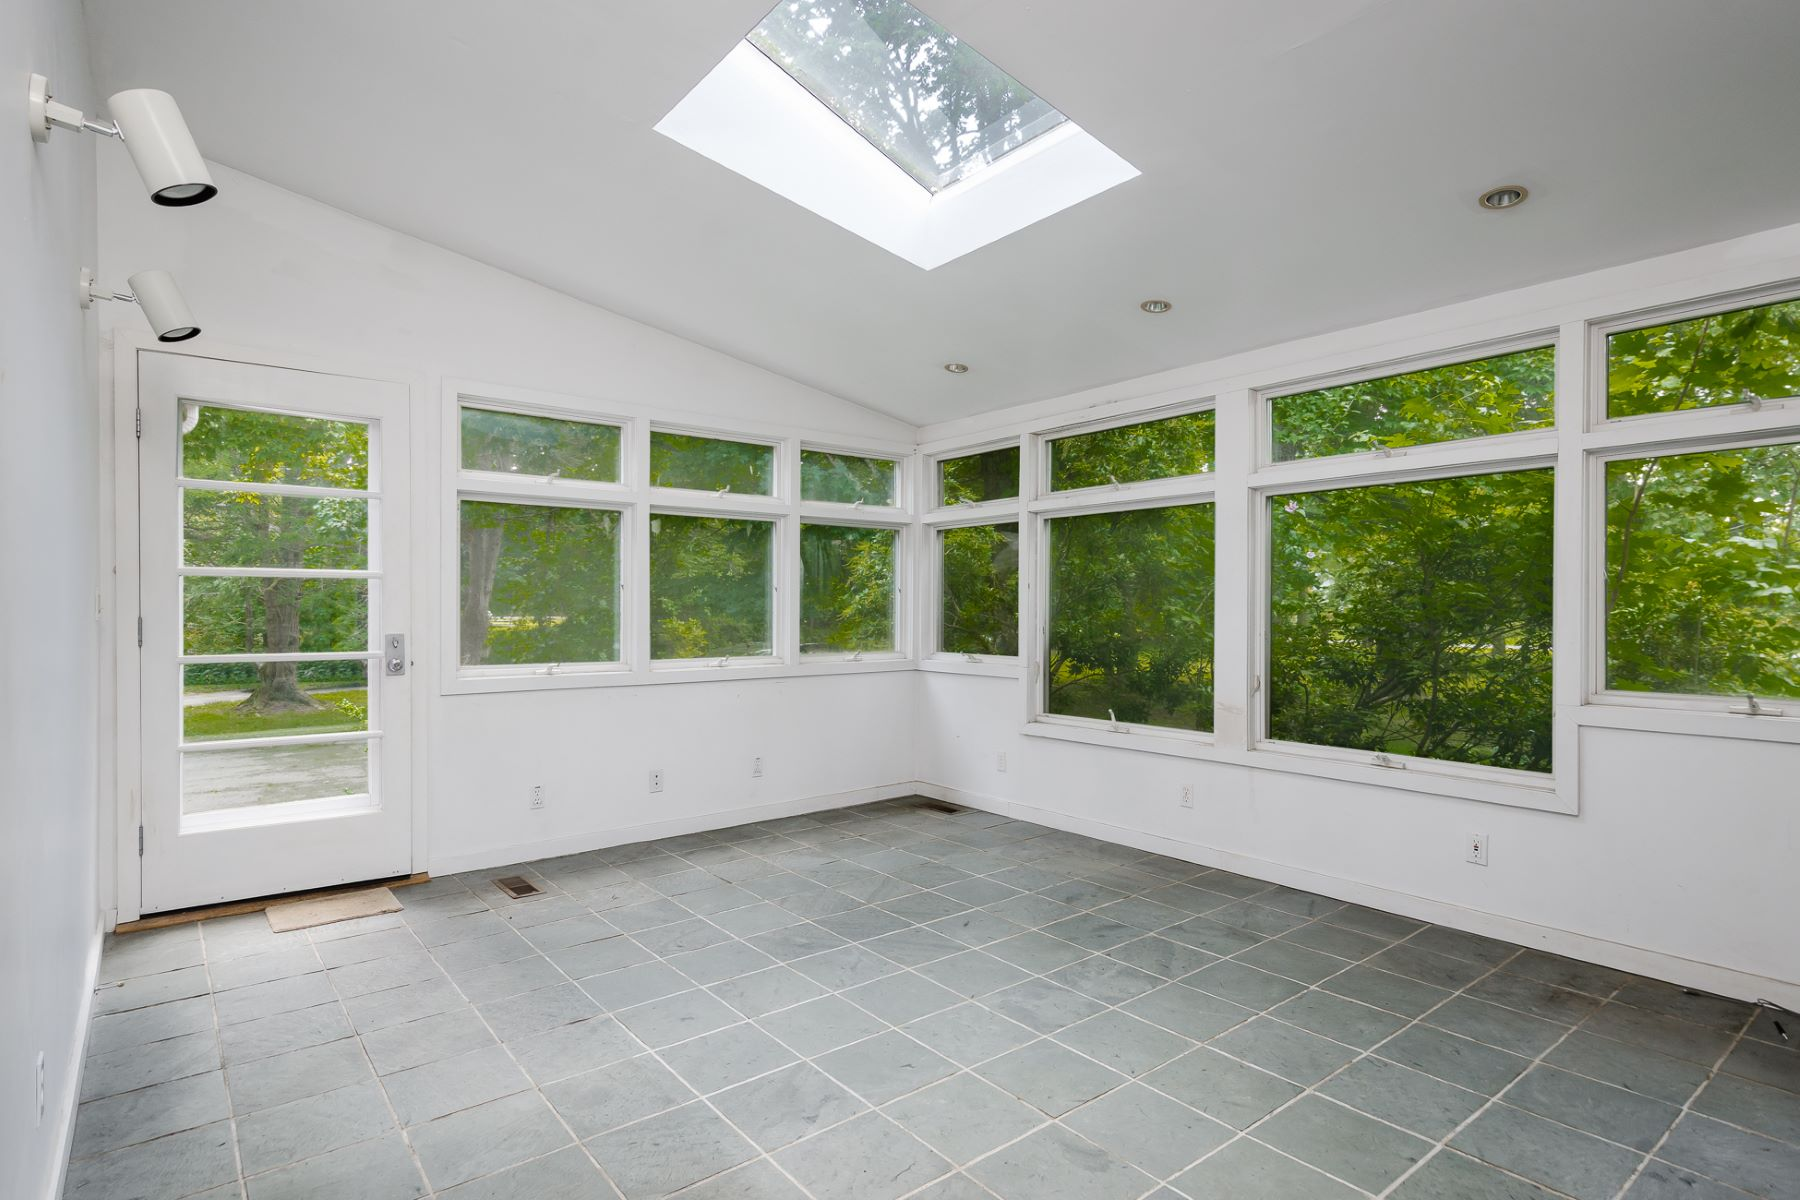 Additional photo for property listing at Ready To Be Transformed 351 Cold Soil Road, Princeton, New Jersey 08540 United States